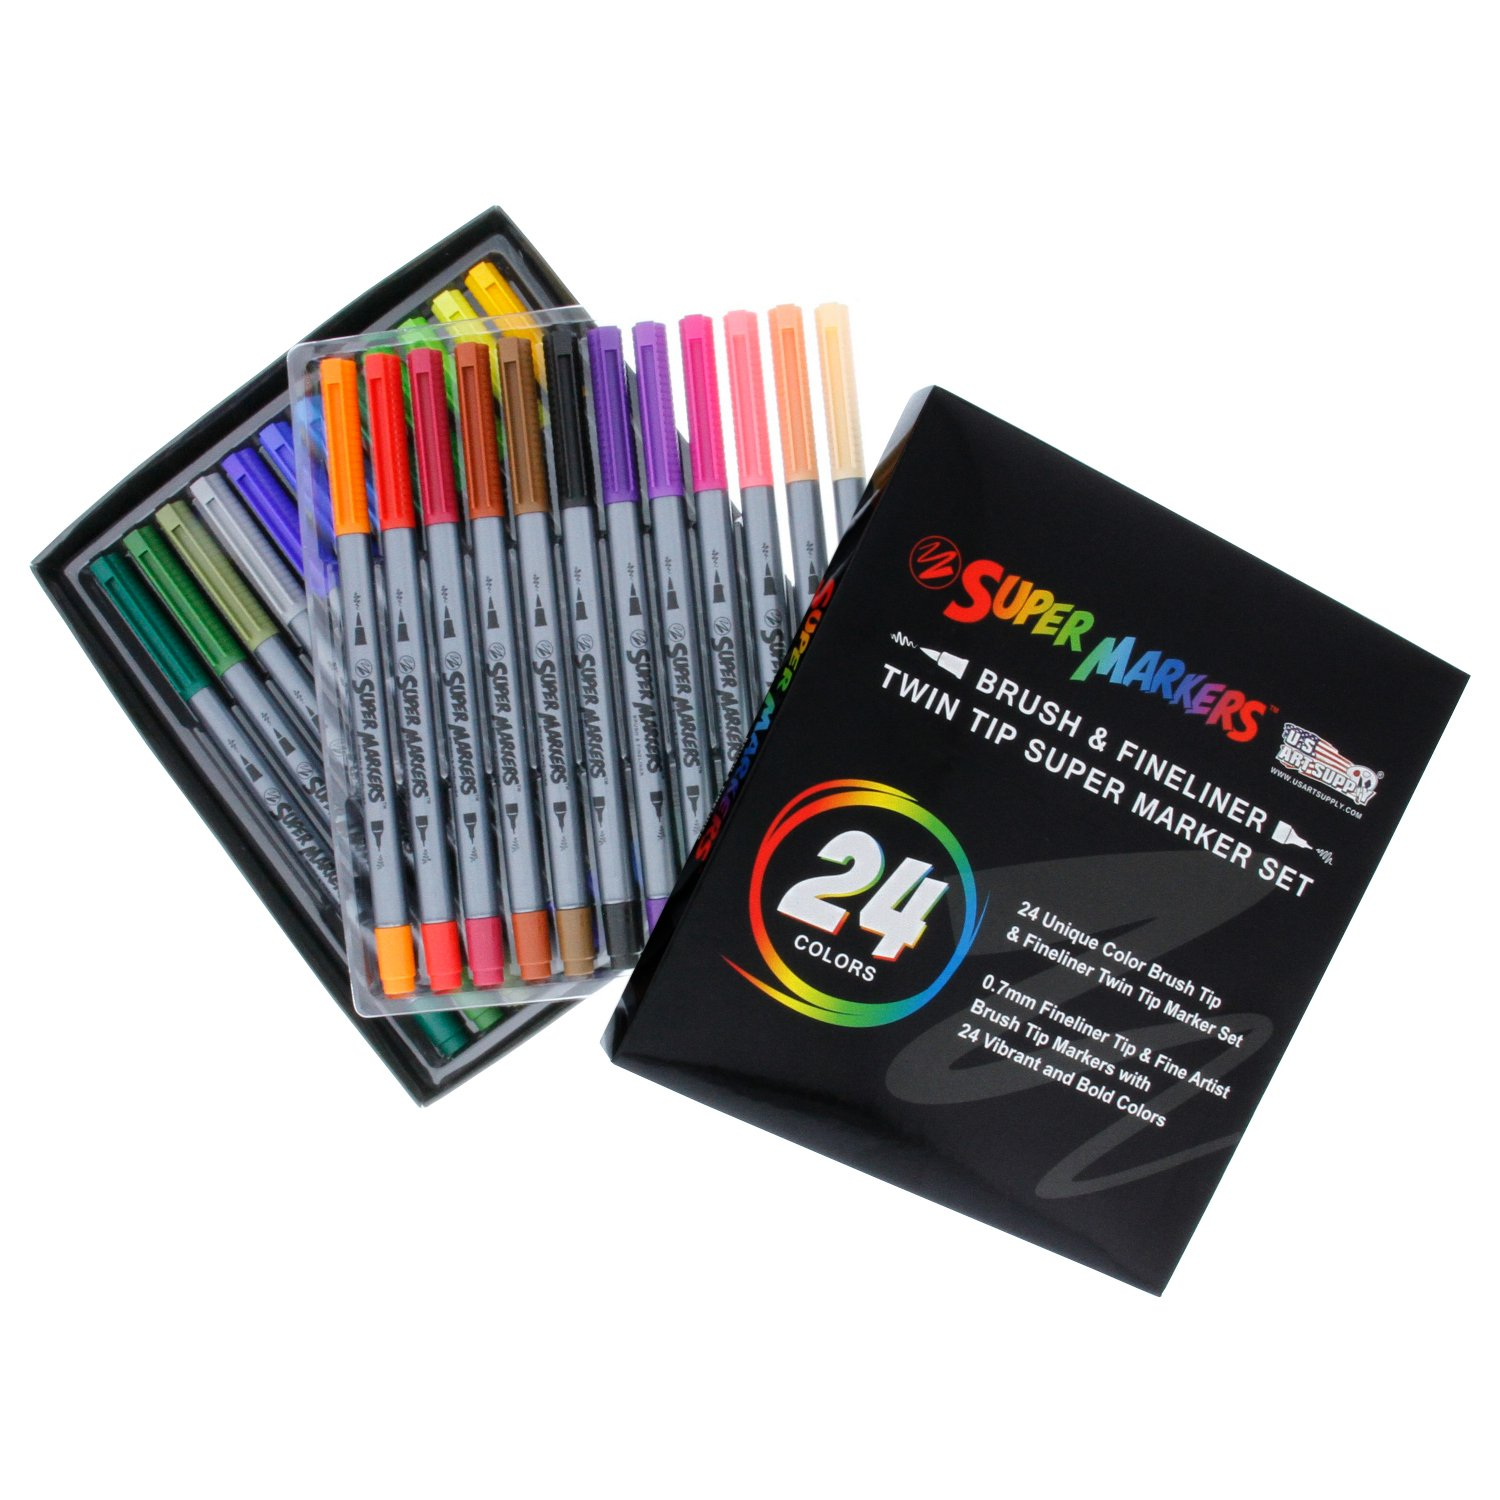 Super Markers 100 Unique Colors Fineliner and Brush Twin Tip Marker Set - .7mm Fineliner Tip & 4.55mm Brush Tip Markers with 100 Vibrant and Bold Colors - 100% Satisfaction Guarantee US Art Supply SM-102